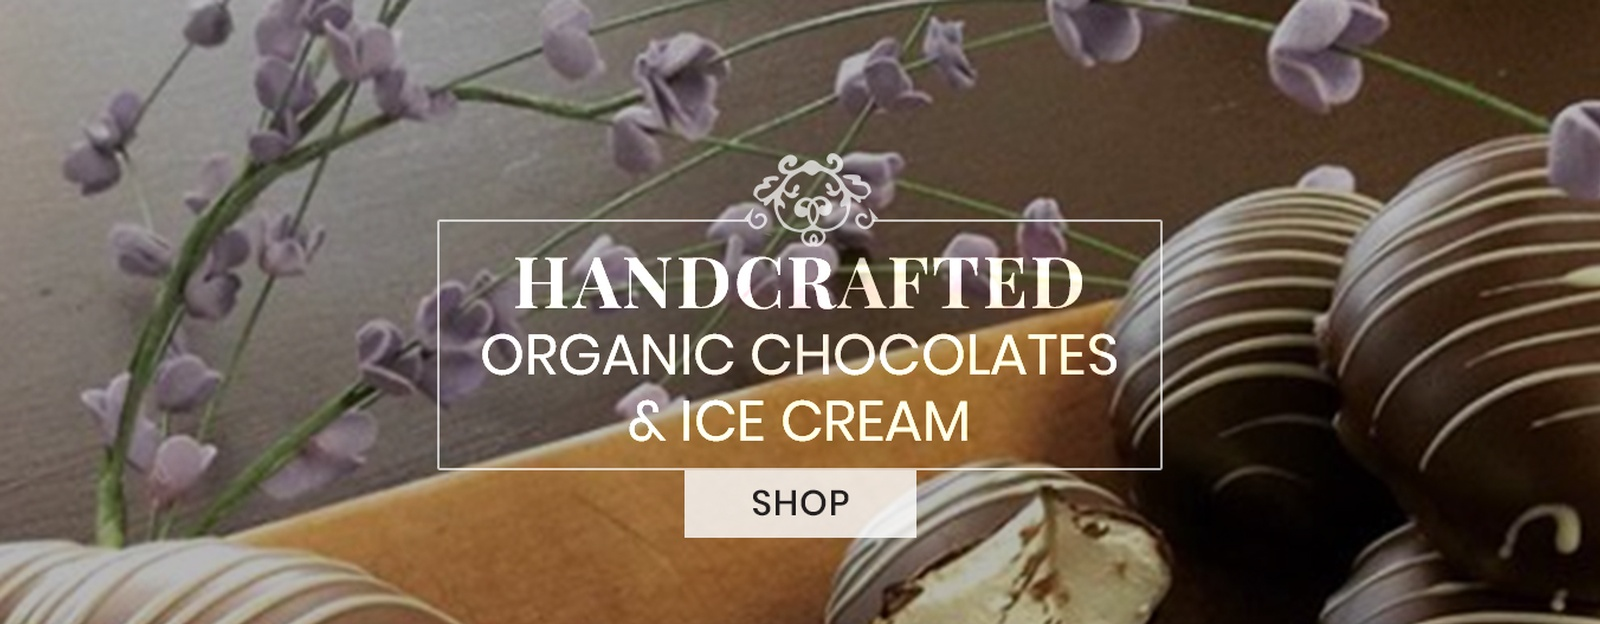 COCO Crafted Organic Chocolates